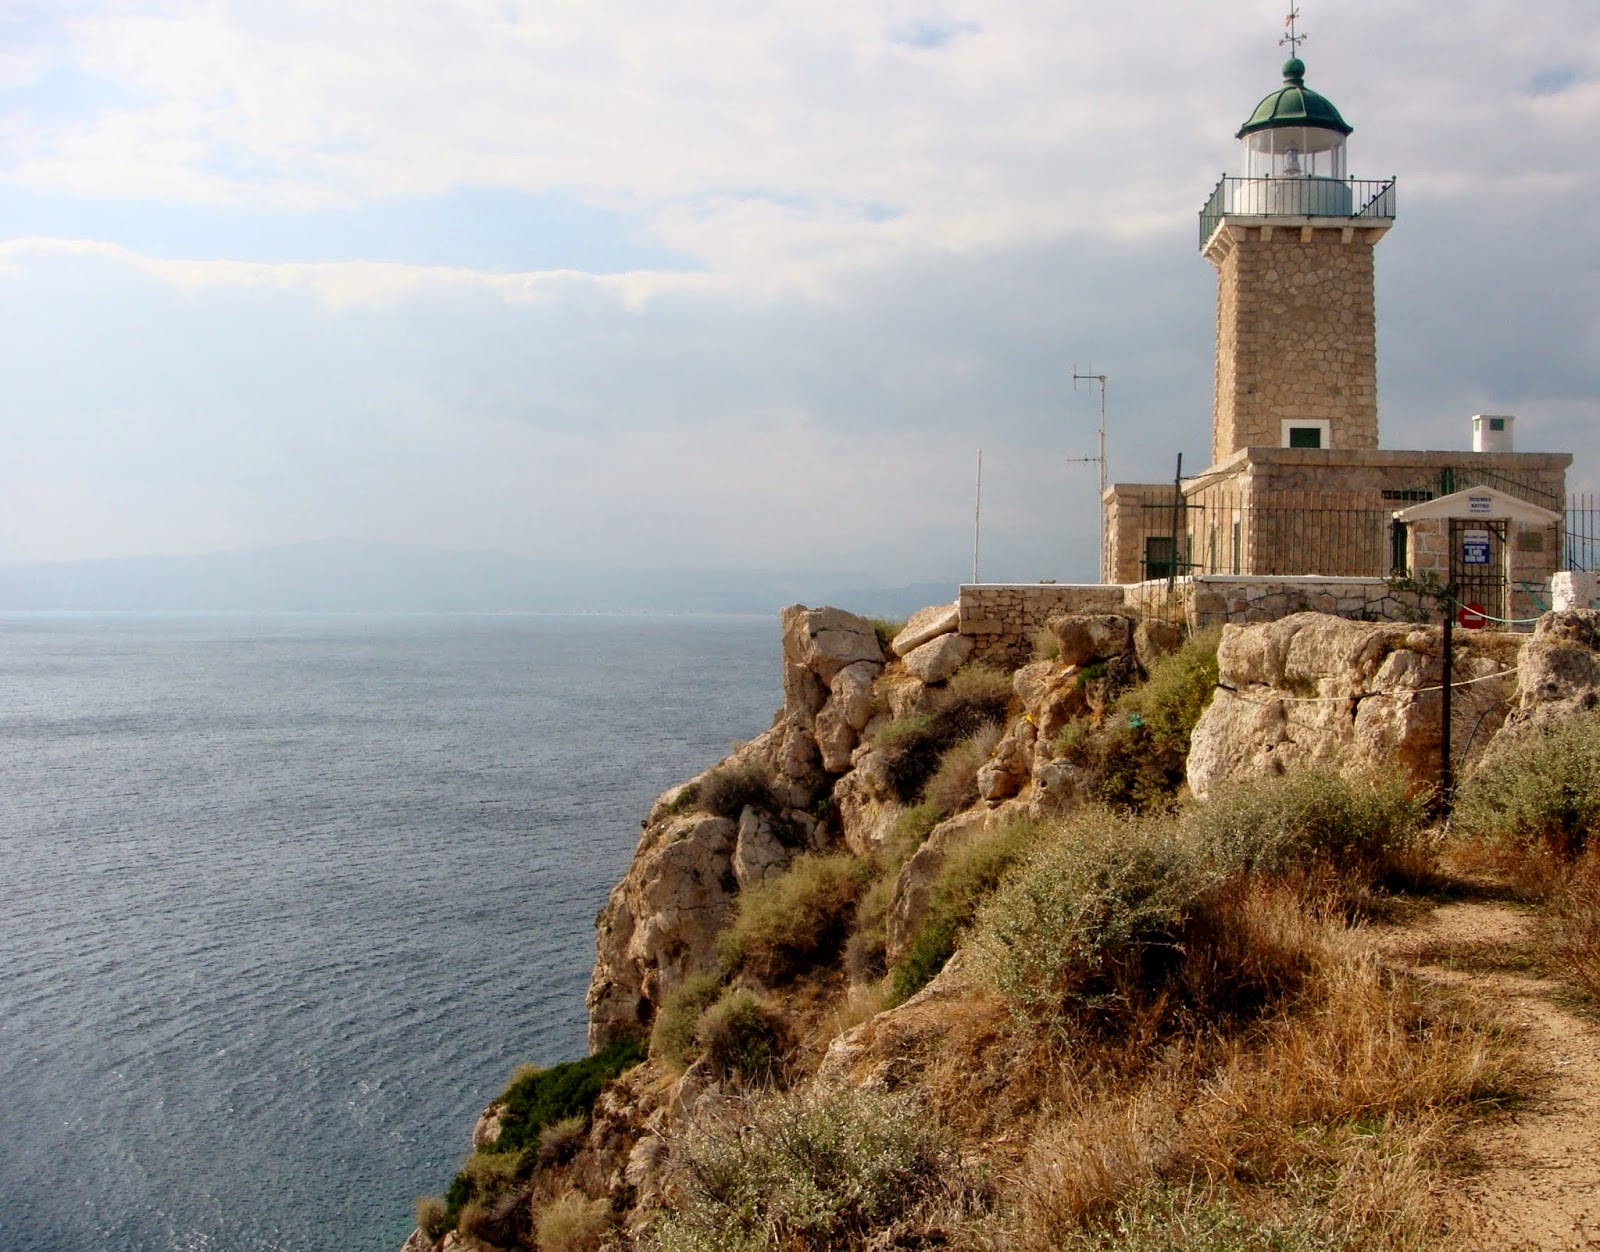 Heraion, Melagavi lighthouse